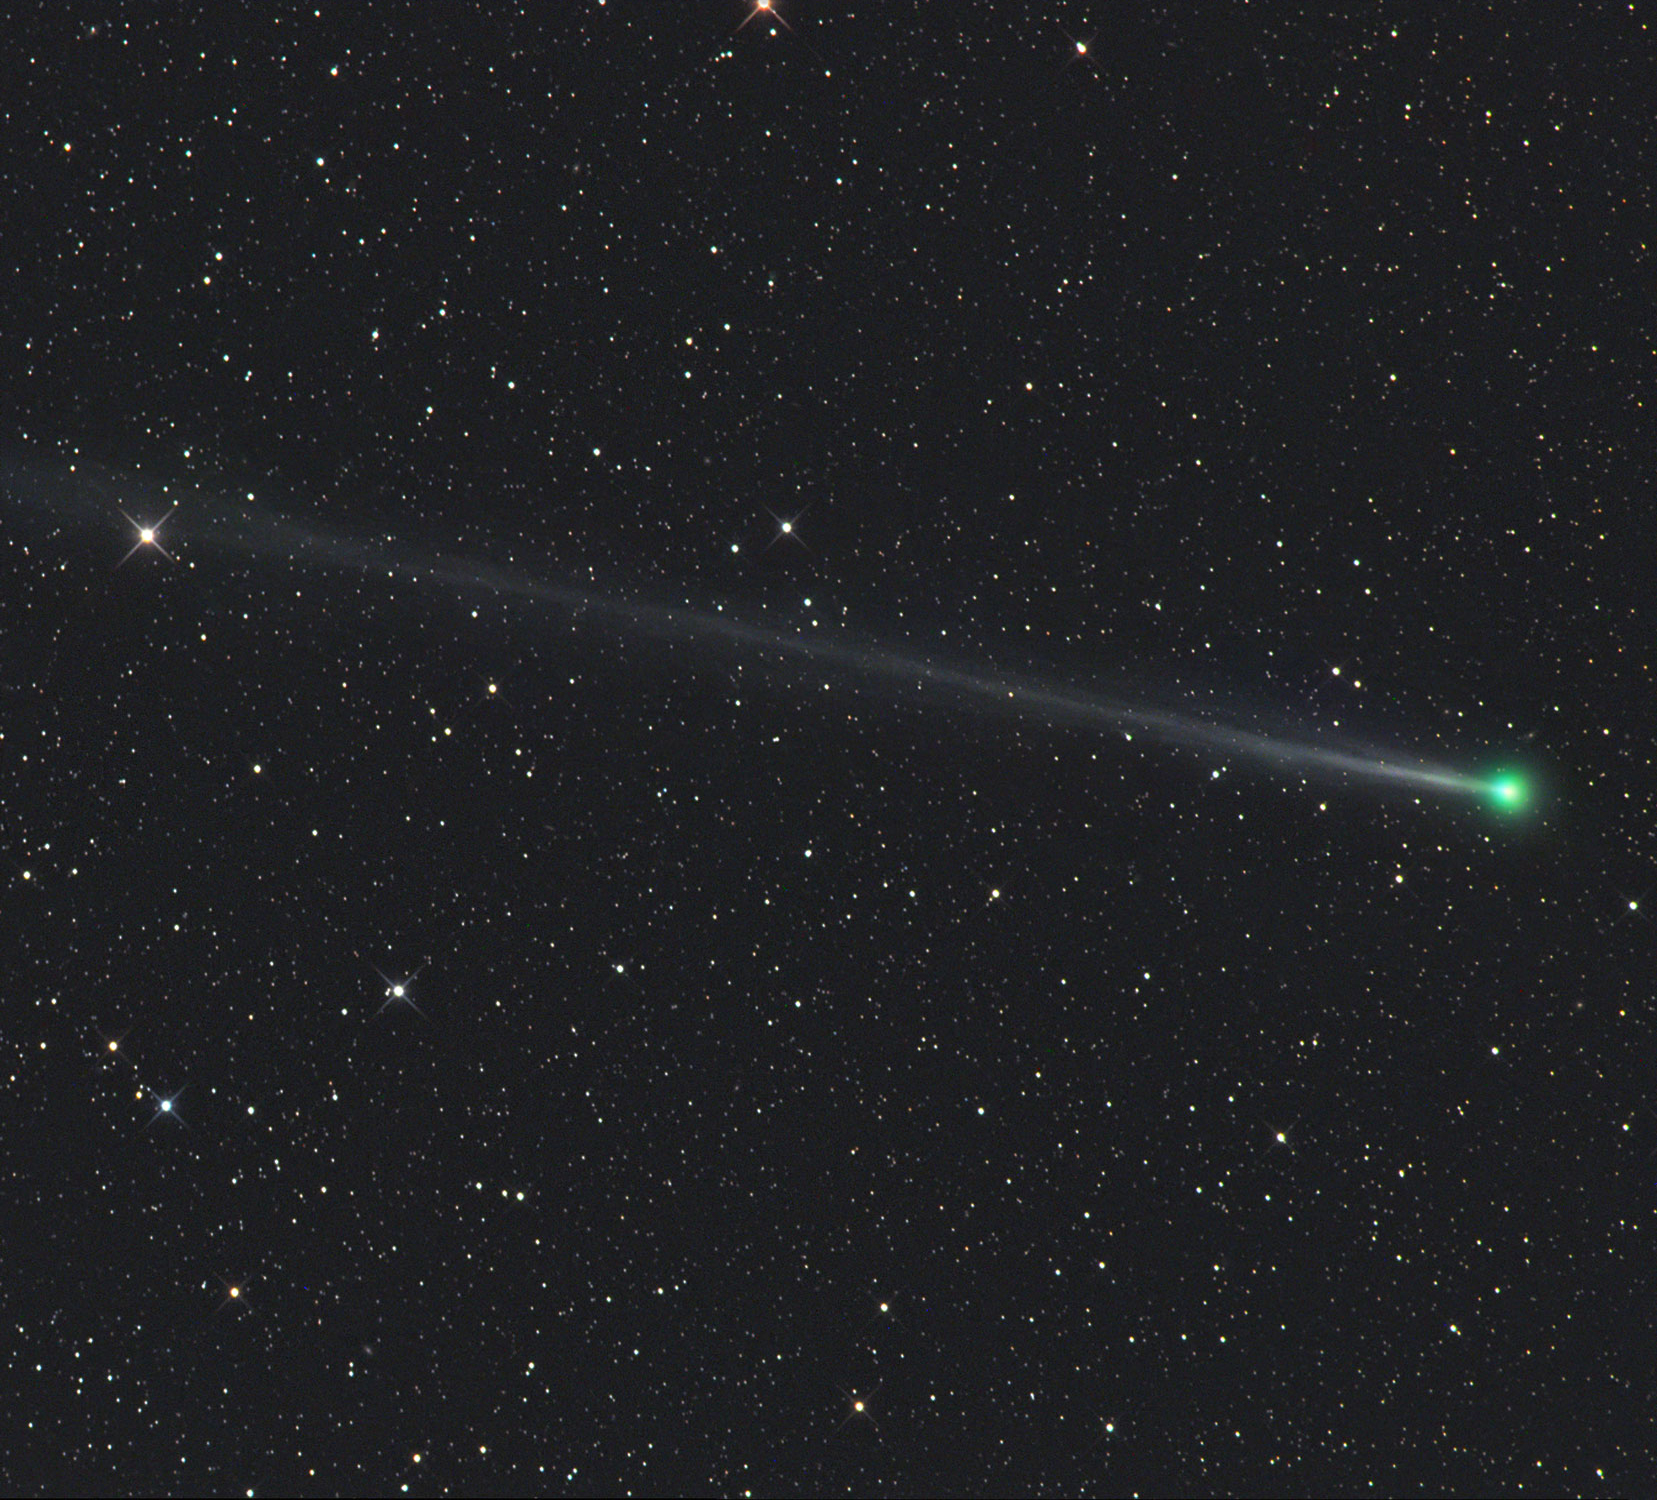 Did You Miss the Green Comet? Mark Your Calendar for These Upcoming Flybys